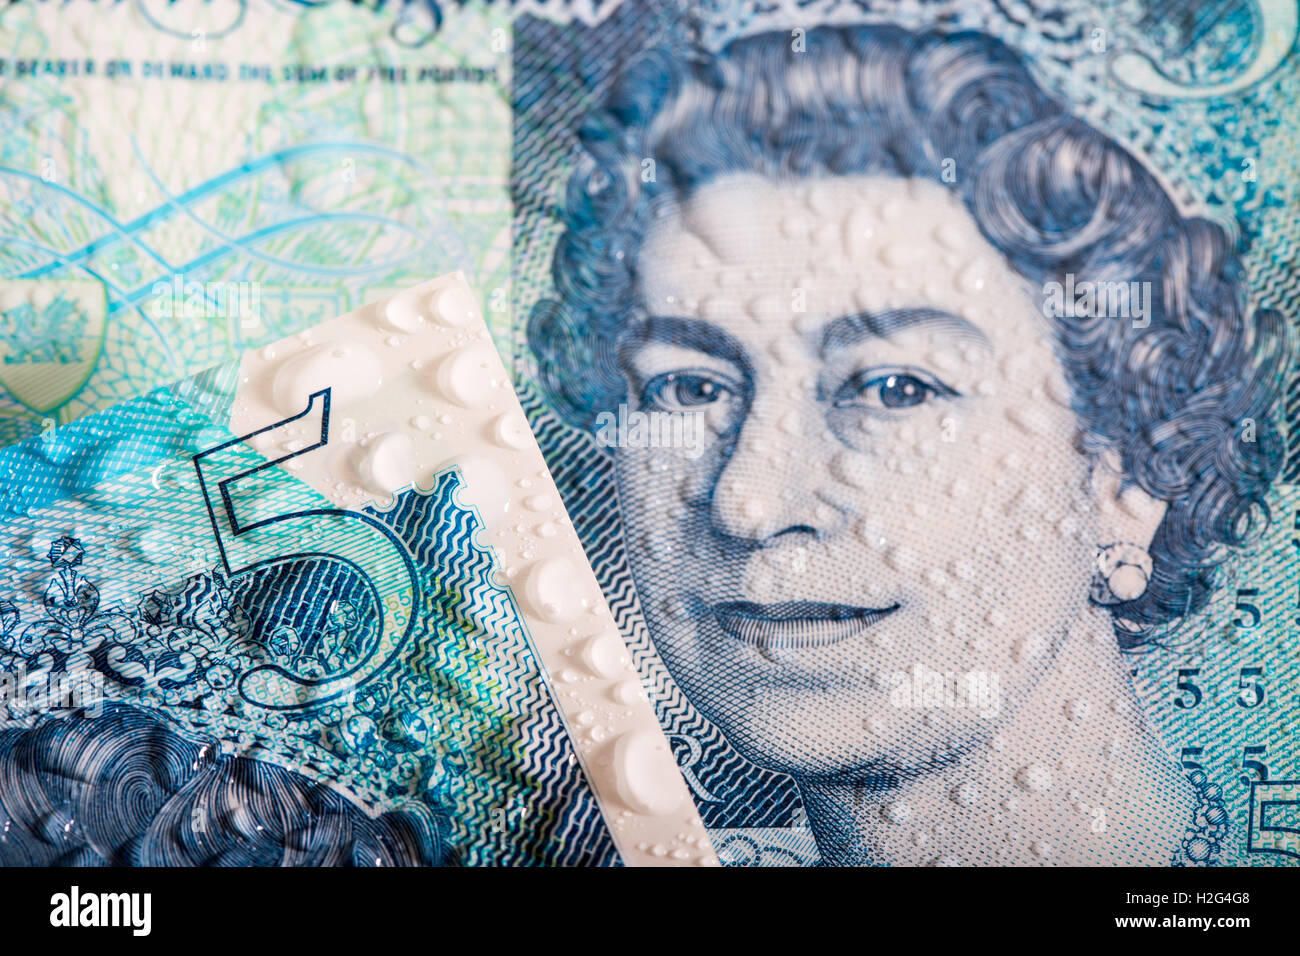 A close up detailed photo of the New waterproof Polymer UK Five Pound Note showing its water resistance - Stock Image